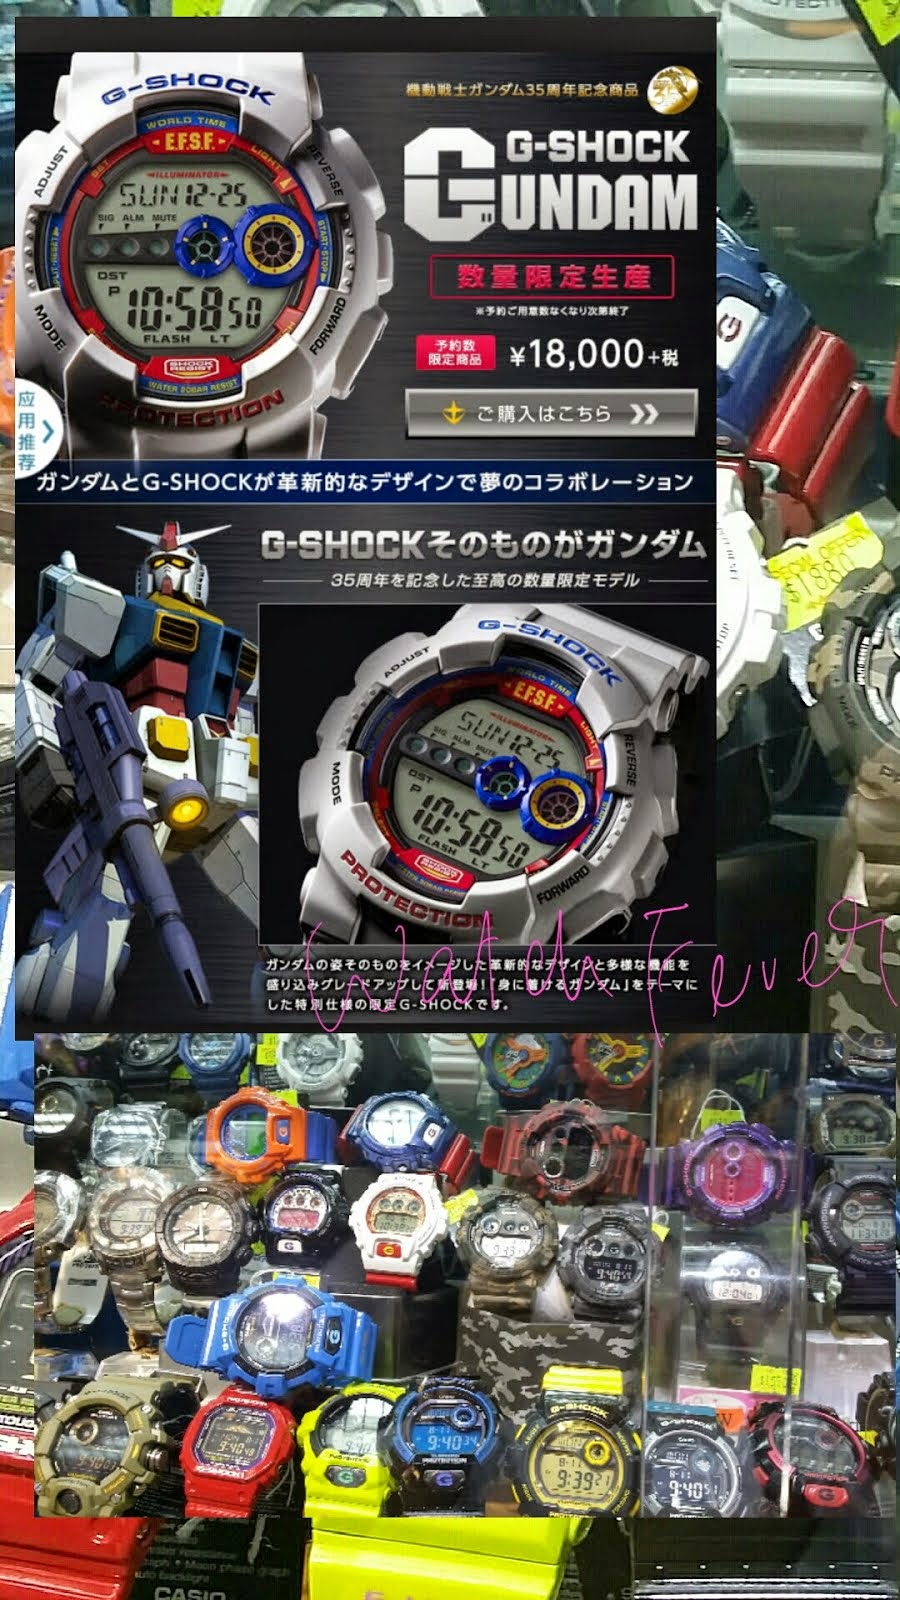 G-Shock Gundam Edition coming Soon!